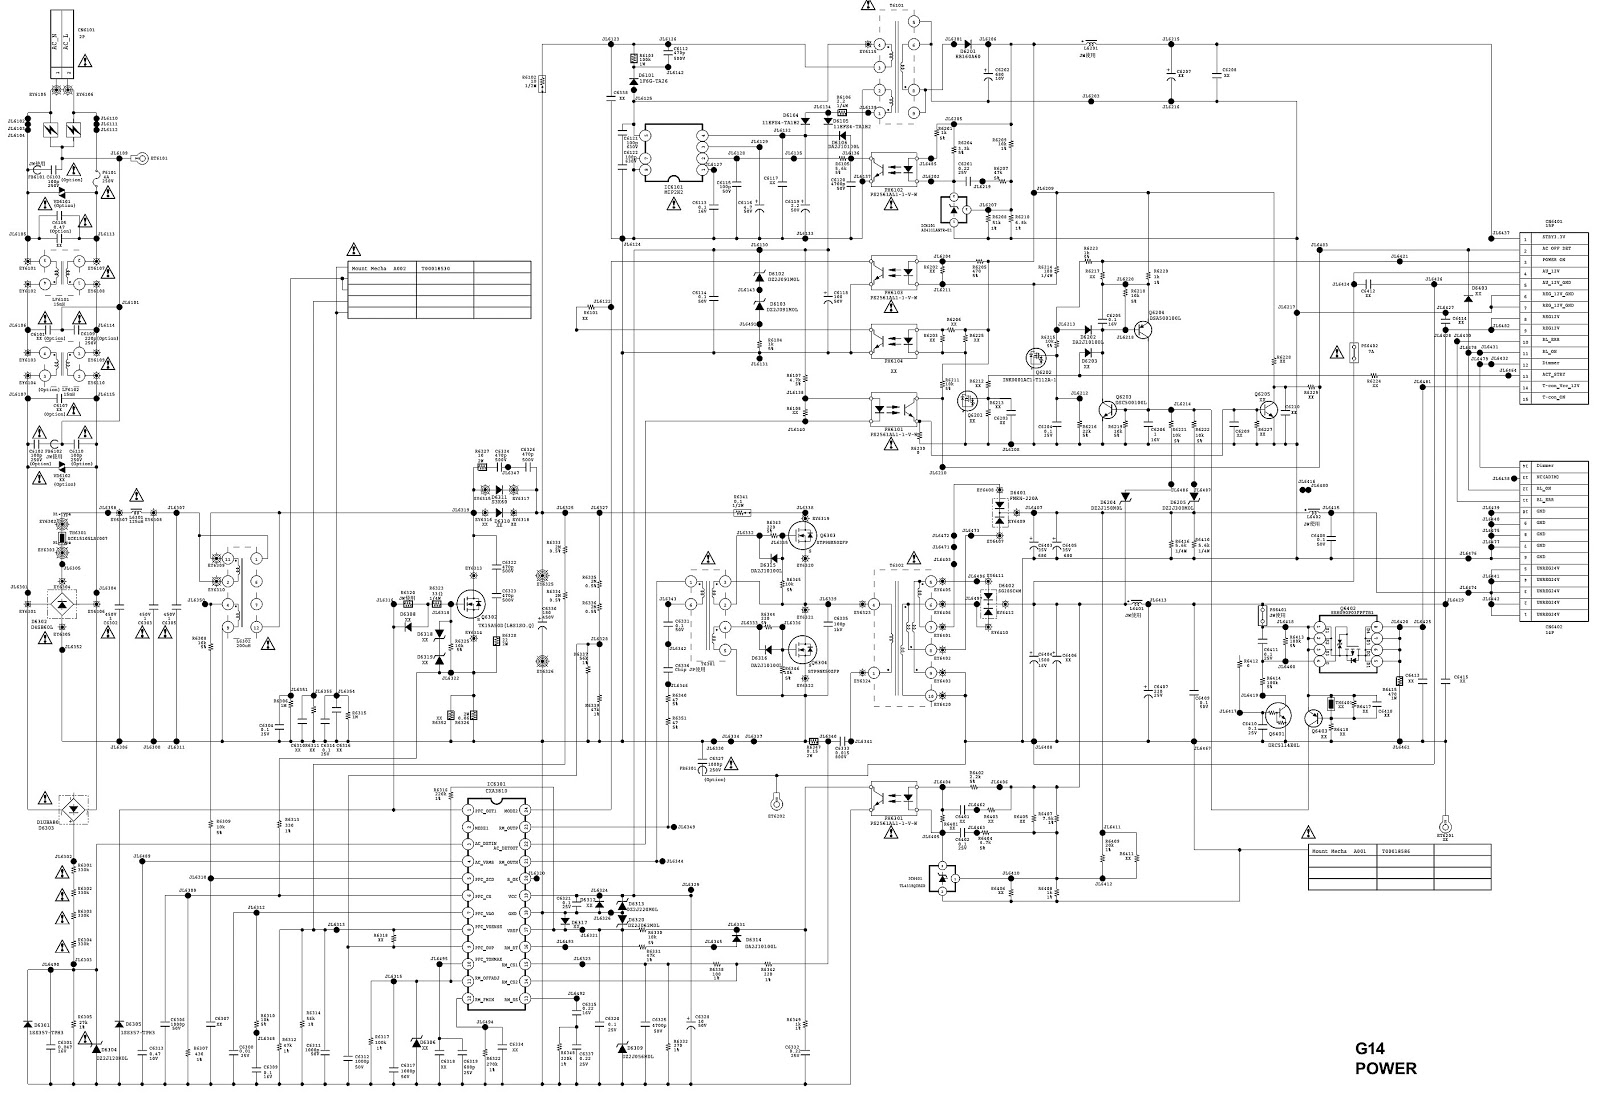 Sony Tv Wiring Diagram Trusted Diagrams Power Supply Ac Matic Using Pc8178 2sd2498 Bravia Circuit Block And Schematic U2022 Xplod Color Code Source